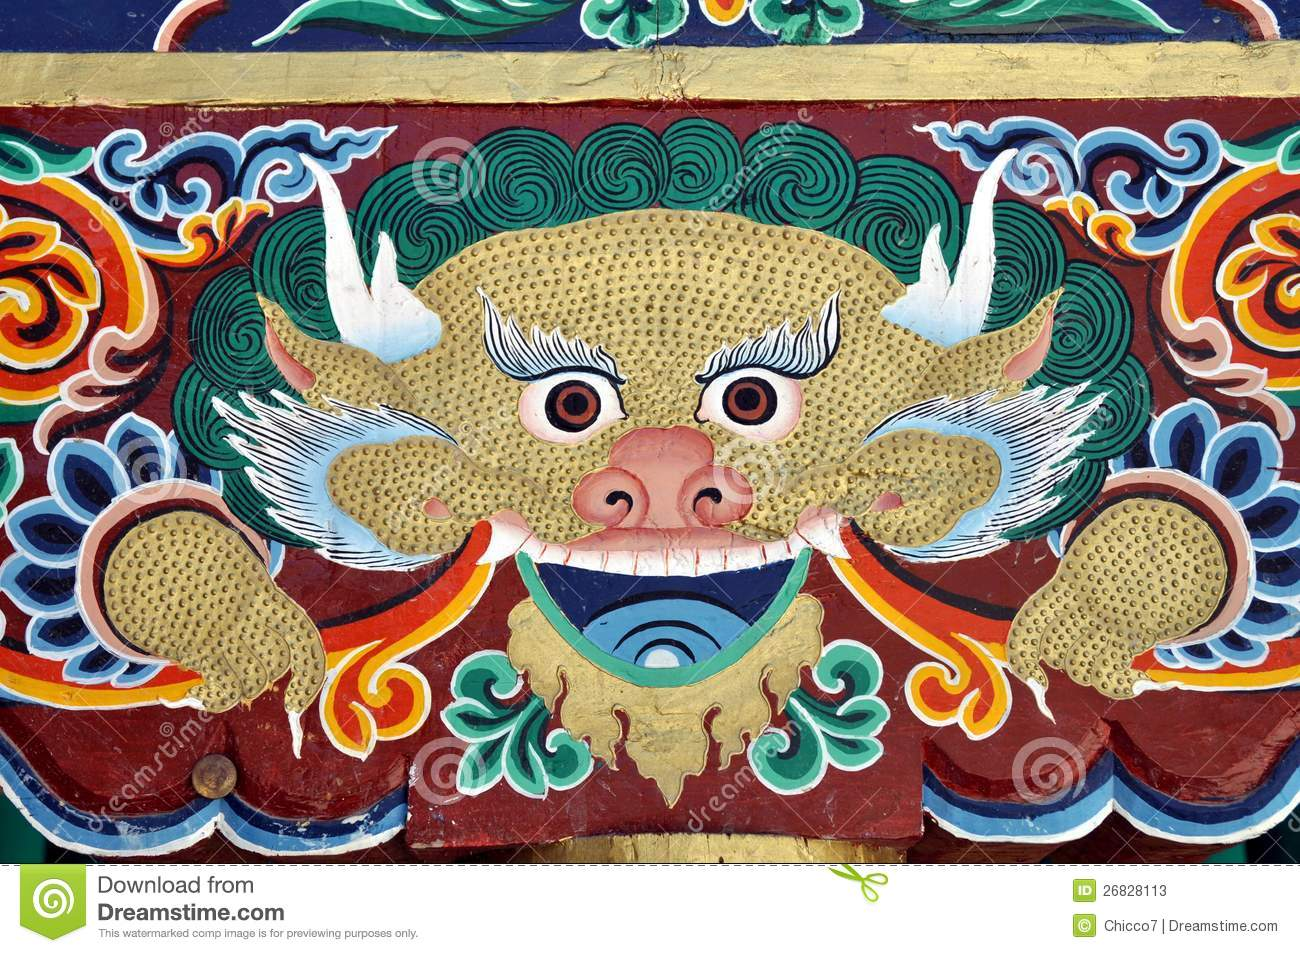 Colorful Painting From A Buddhist Temple In Ladakh Stock Image - Image of  eyes, orange: 26828113